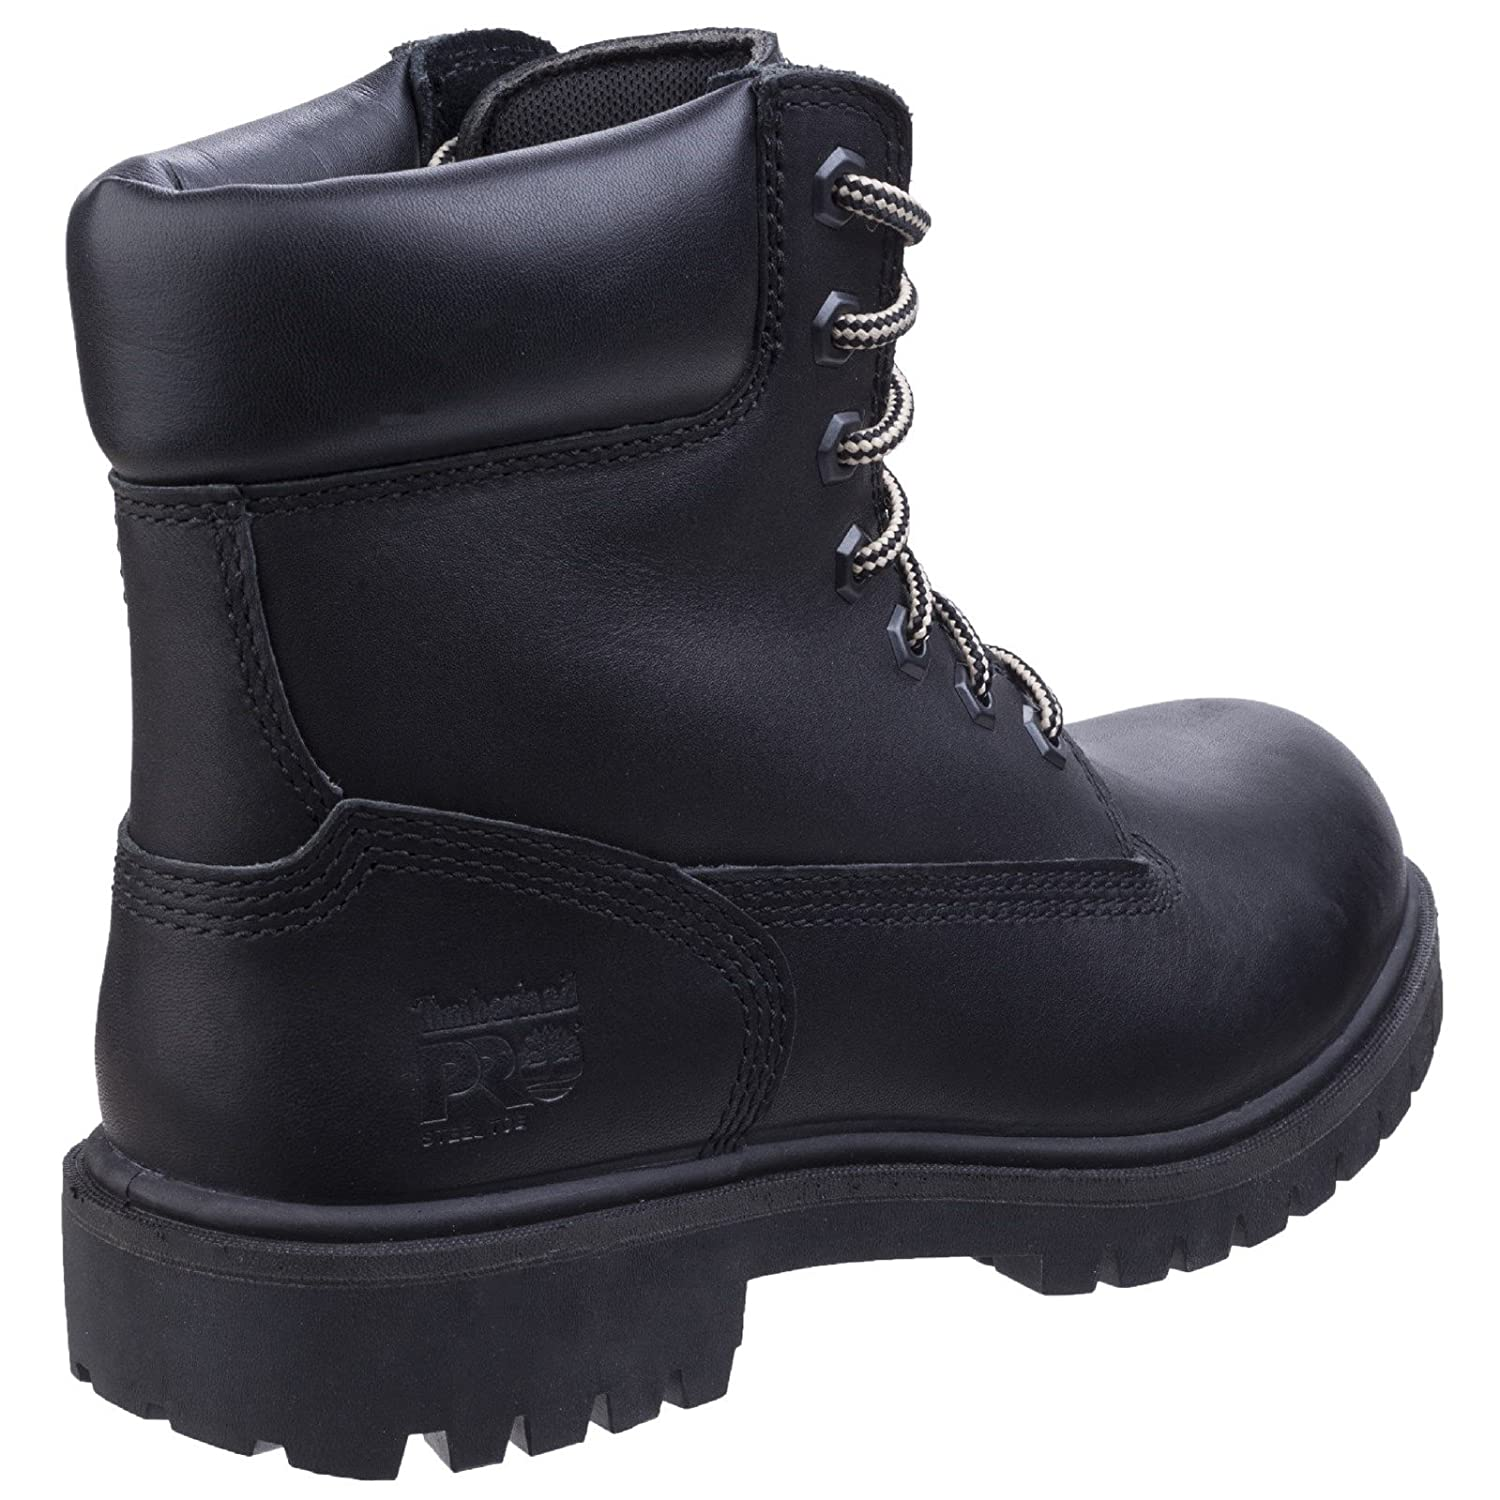 b7e029532fc Timberland Pro Direct Attach Safety Boots Womens Leather Steel Toe Cap Work  Shoes